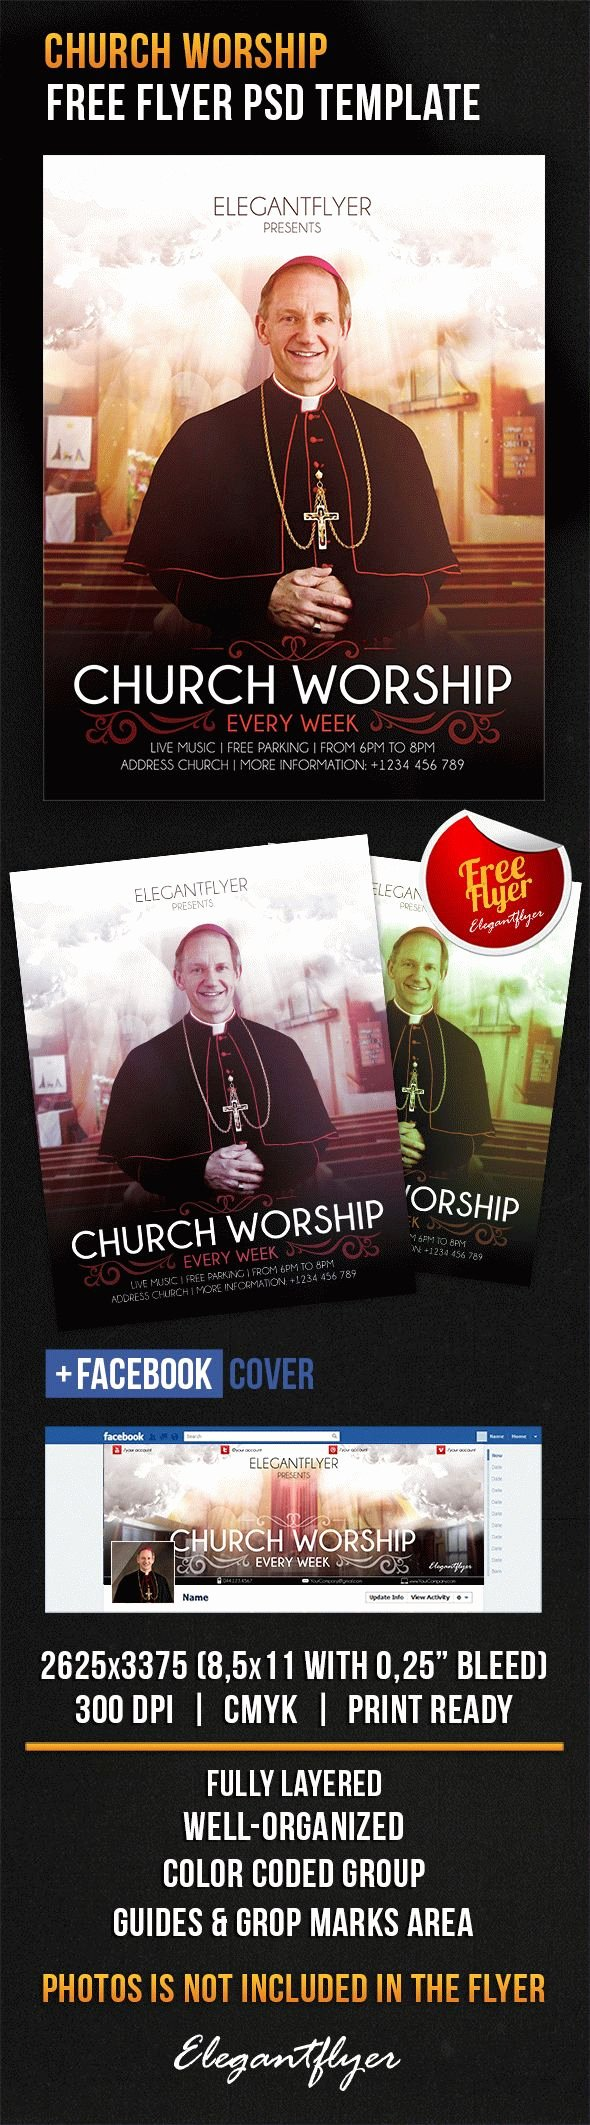 Free Church Flyer Templates New Church Worship – Free Flyer Psd Template – by Elegantflyer